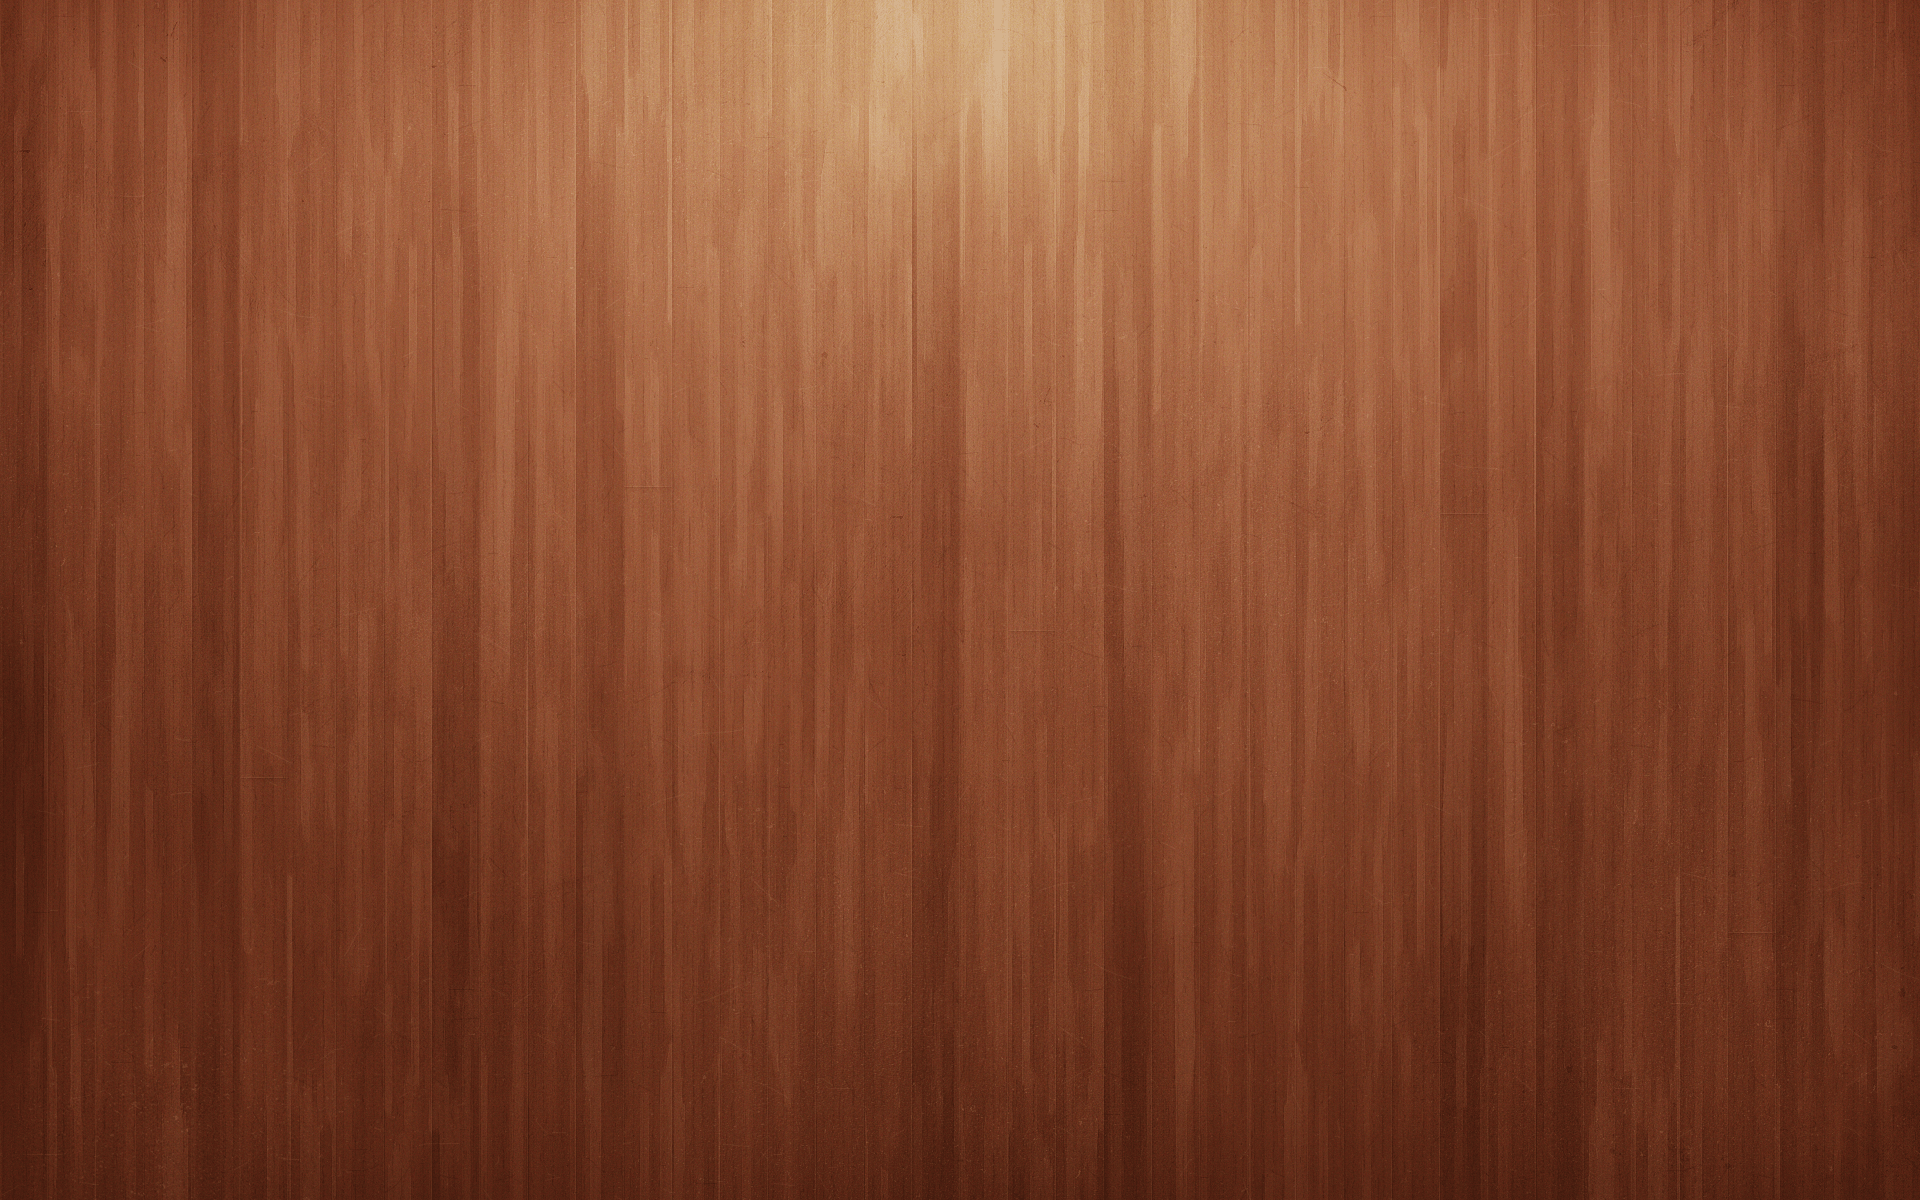 wood wallpaper png